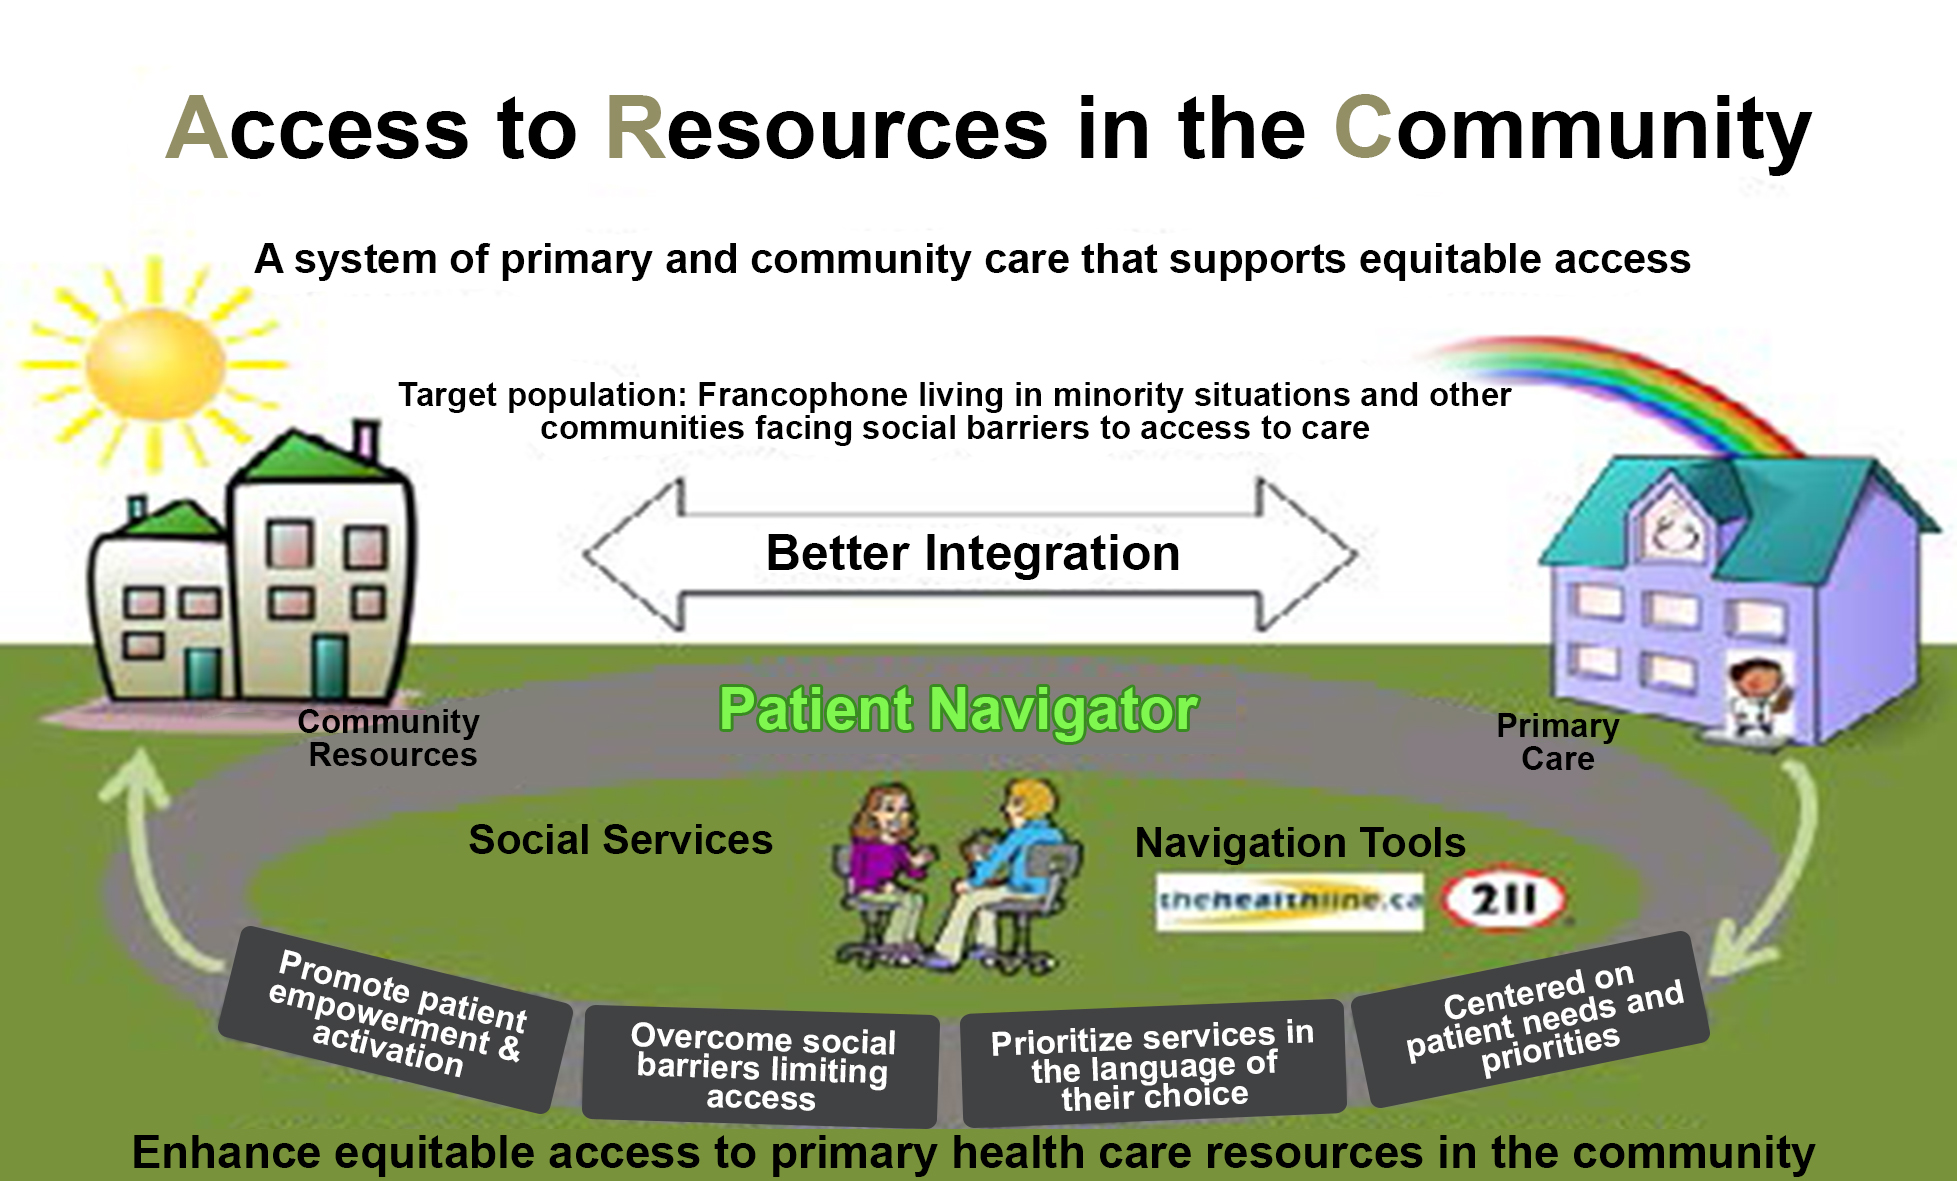 Access to Resources in the Community (ARC) intervention